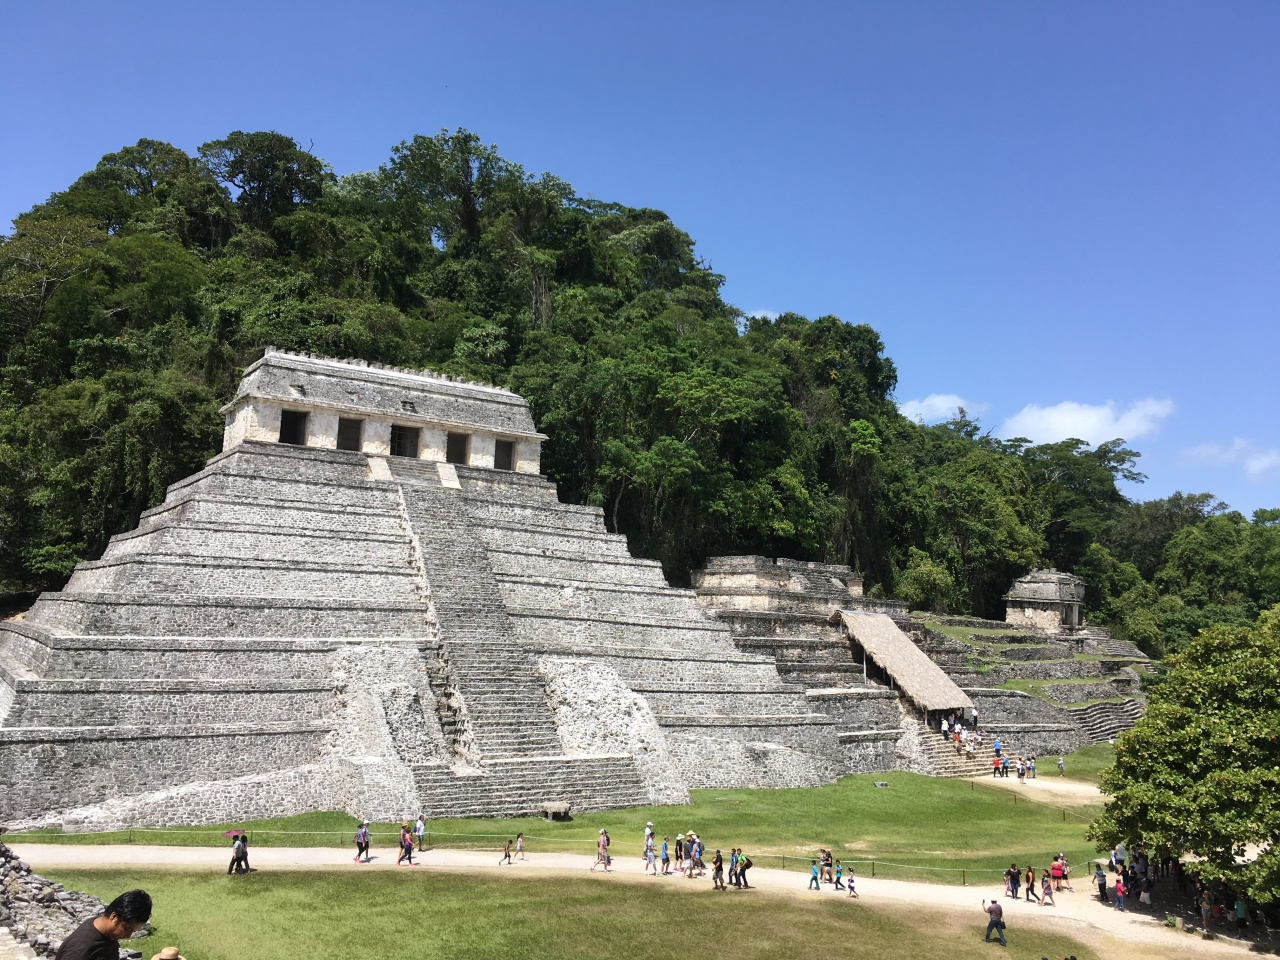 Discover hidden Maya ruins in the jungle of Palenque